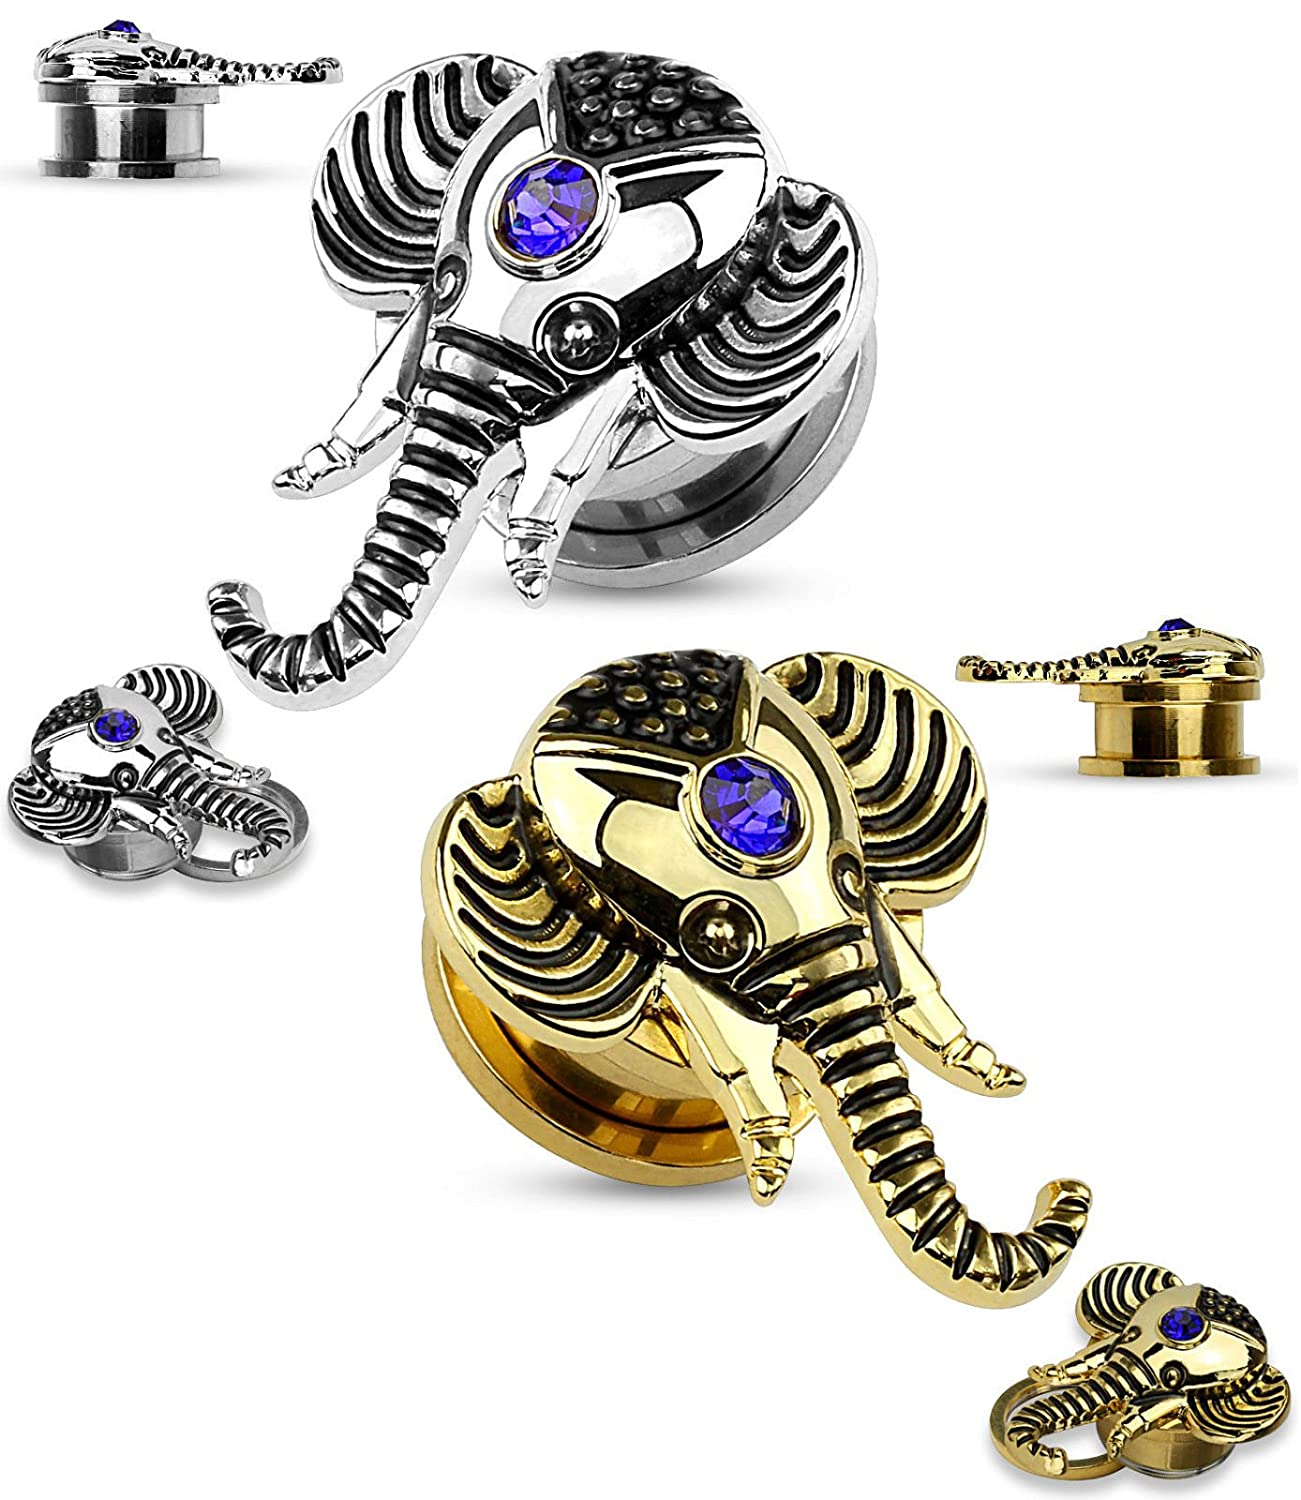 Lobal Domination Pair of Elephant w//Sapphire Blue Gem Top Steel Screw Fit Tunnel Plugs Steel or Gold